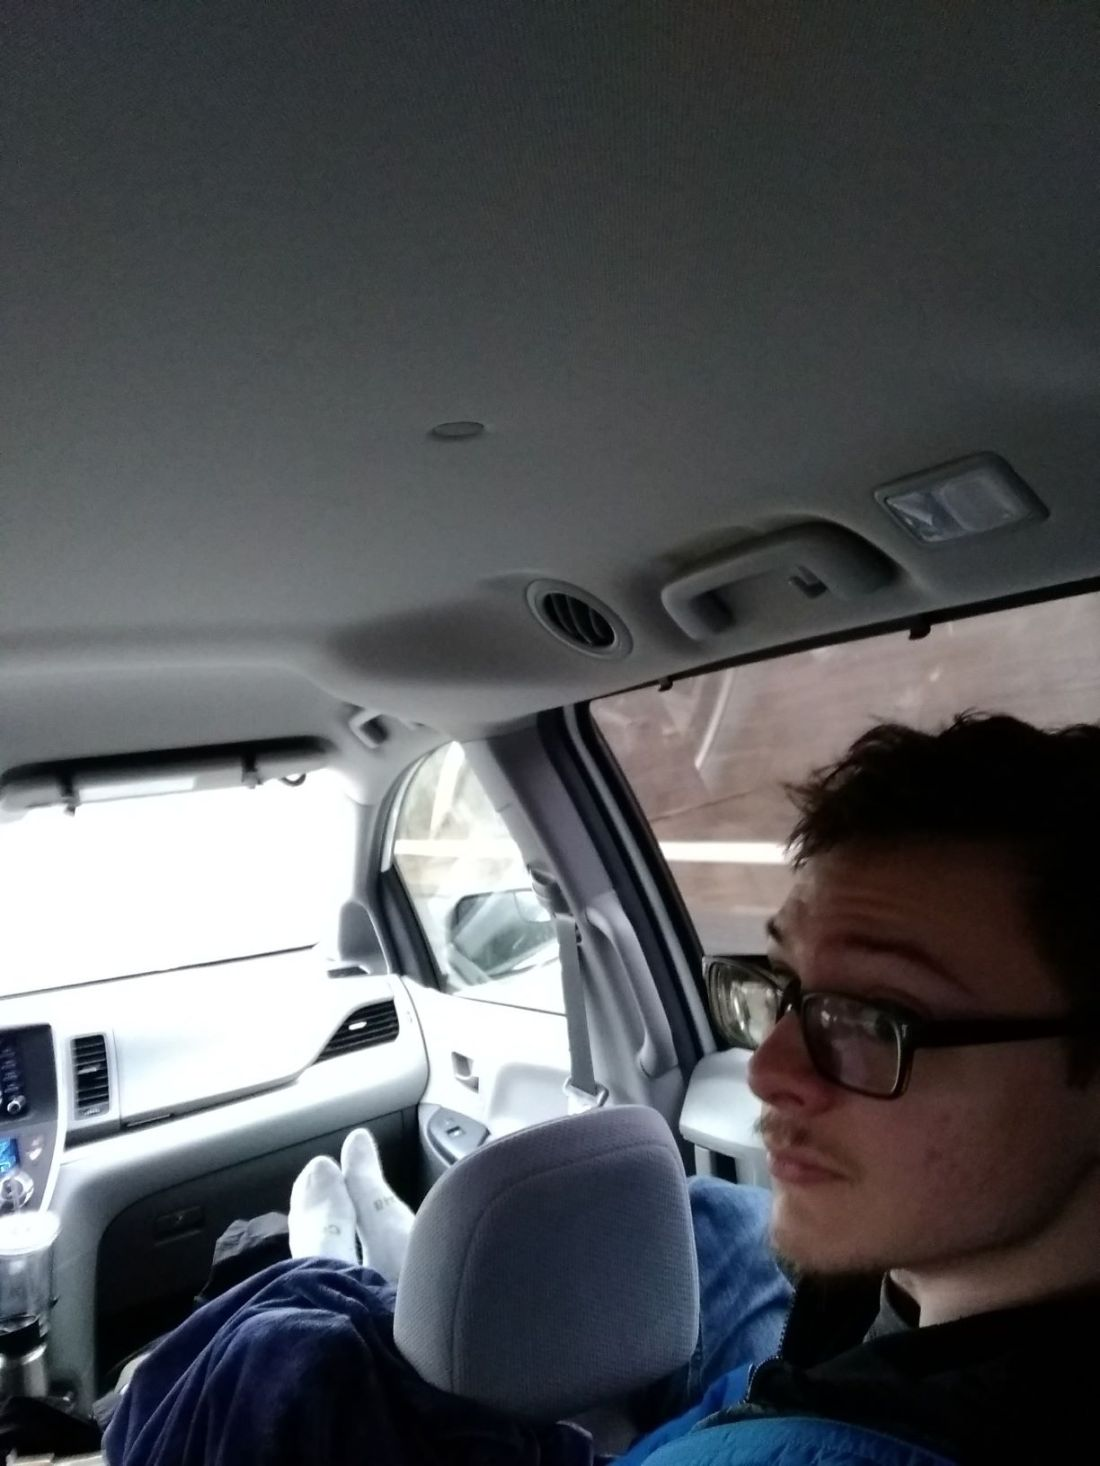 033019 David selfie in car.jpg